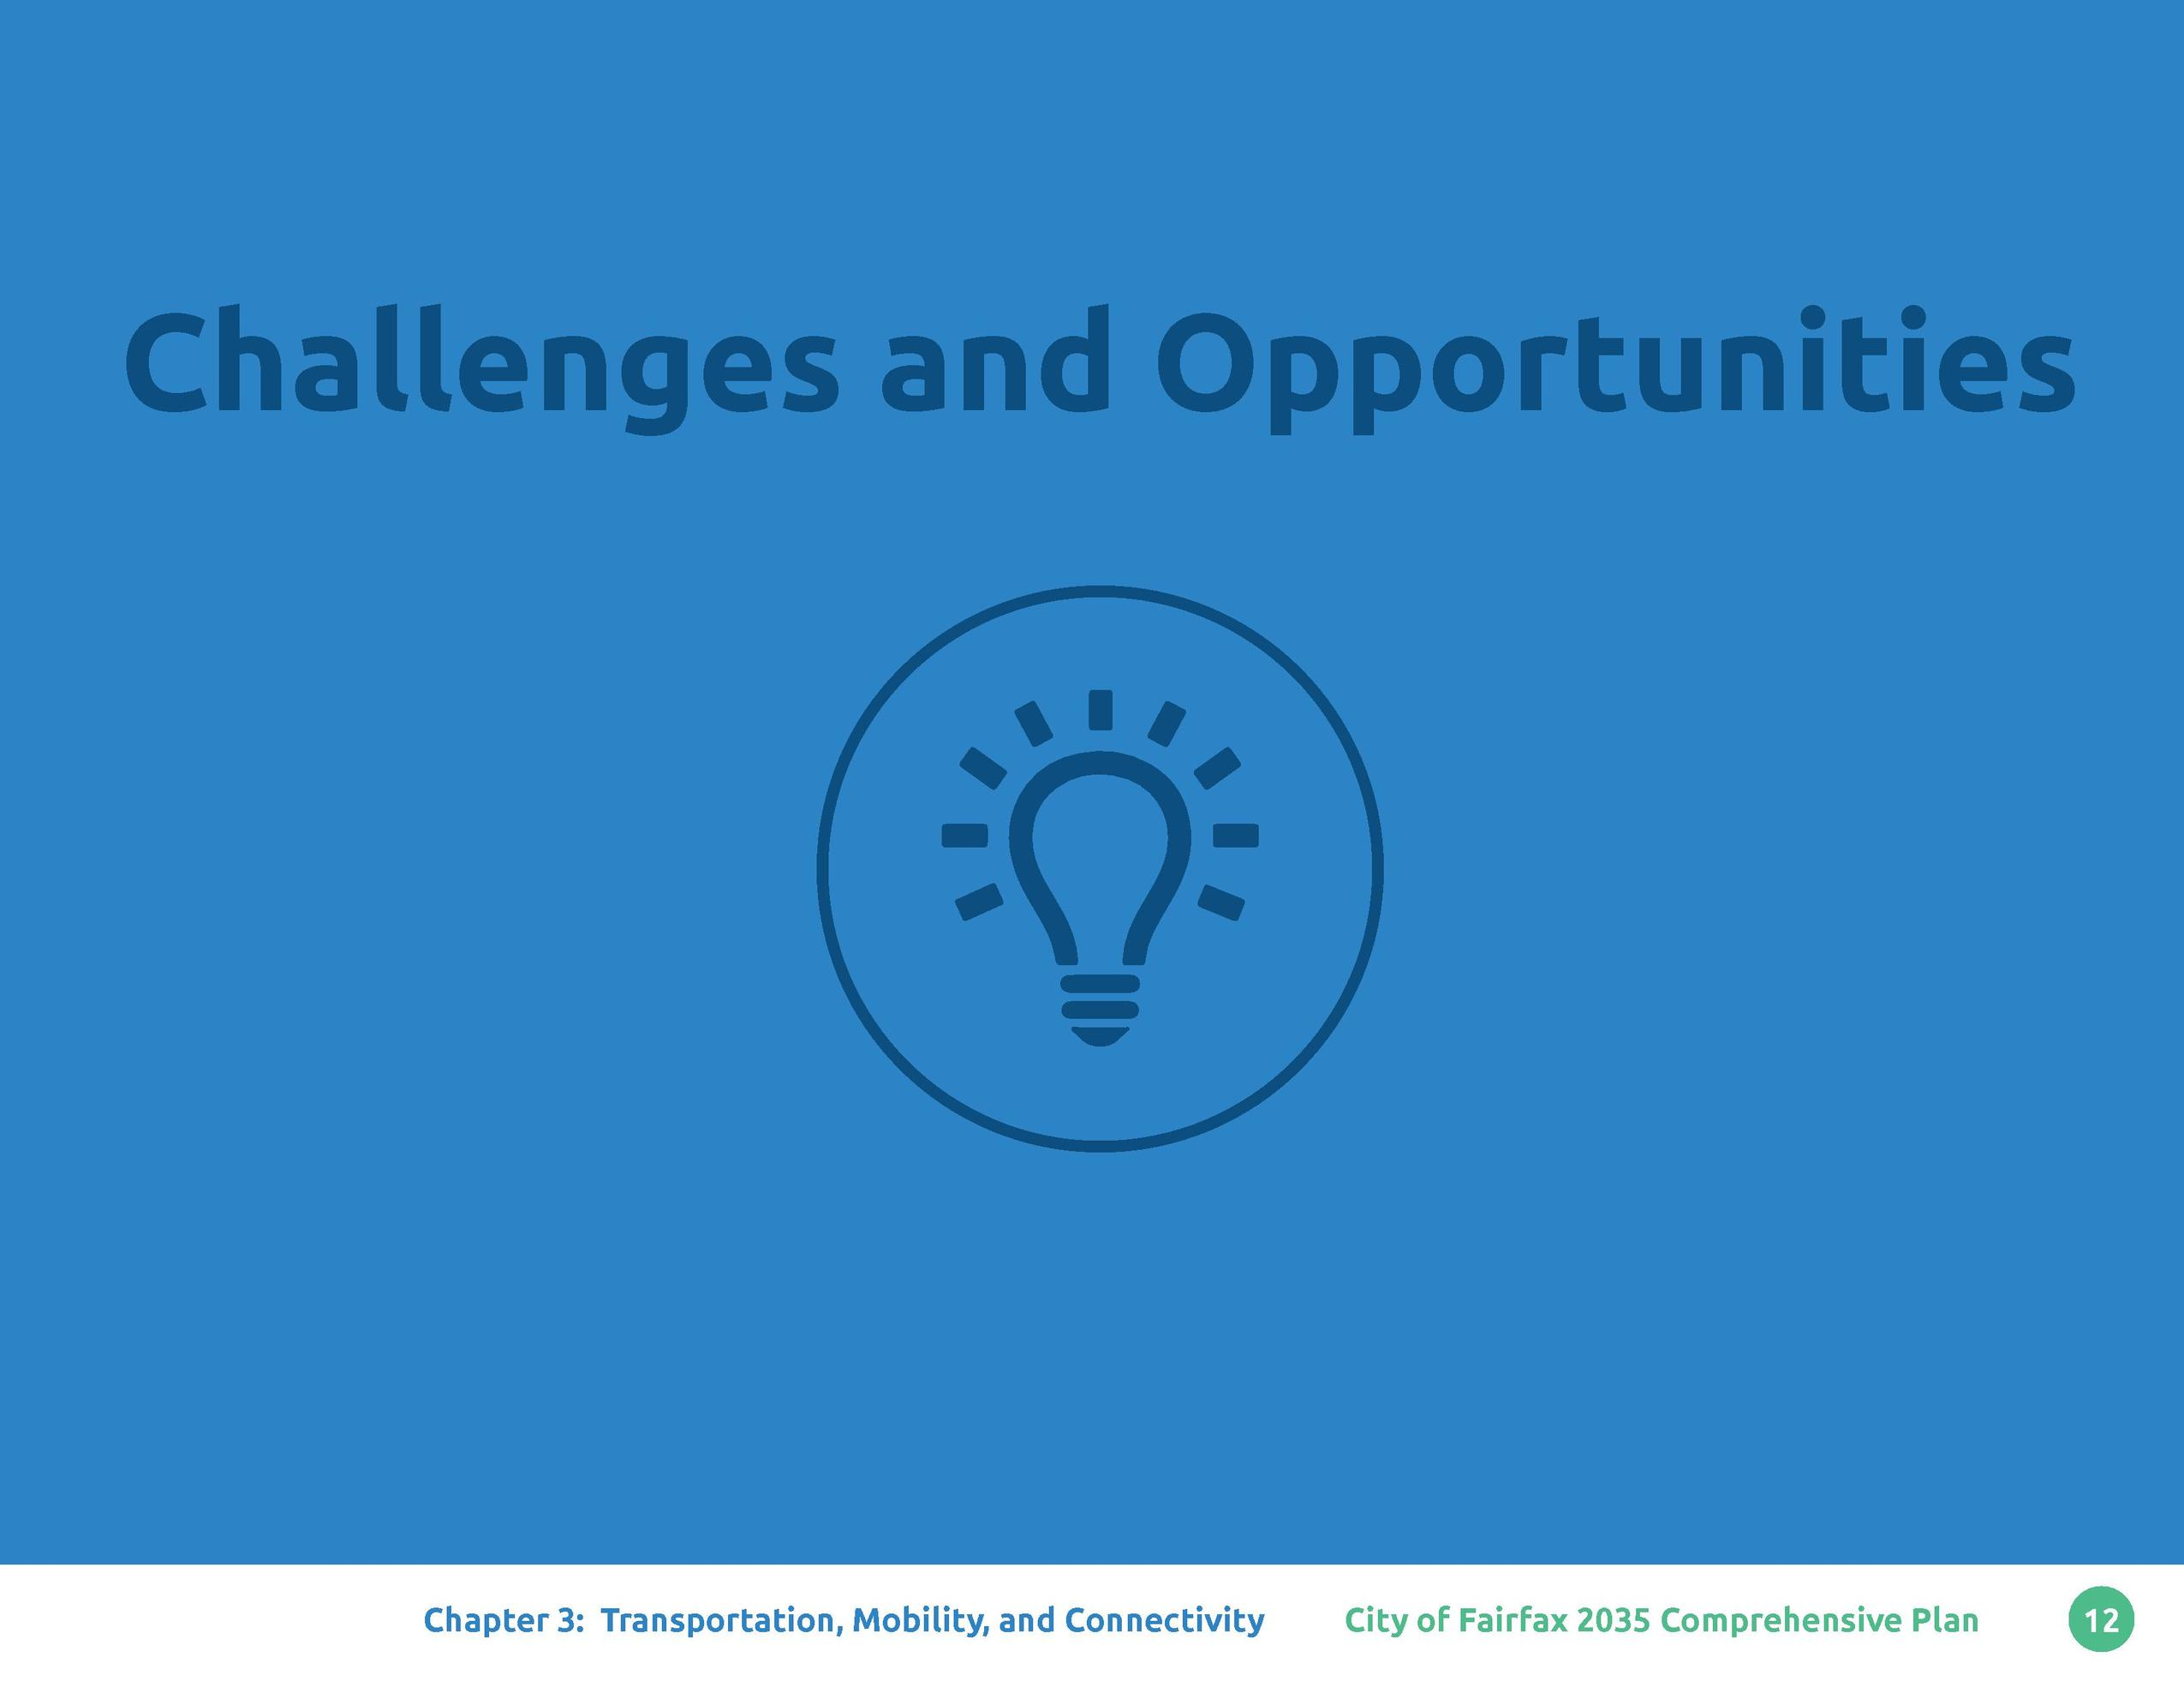 Challenges and Opportunities        Chapter 3  Transportation, Mobility, and Connectivity  City of Fairfax 2035 Comprehens...